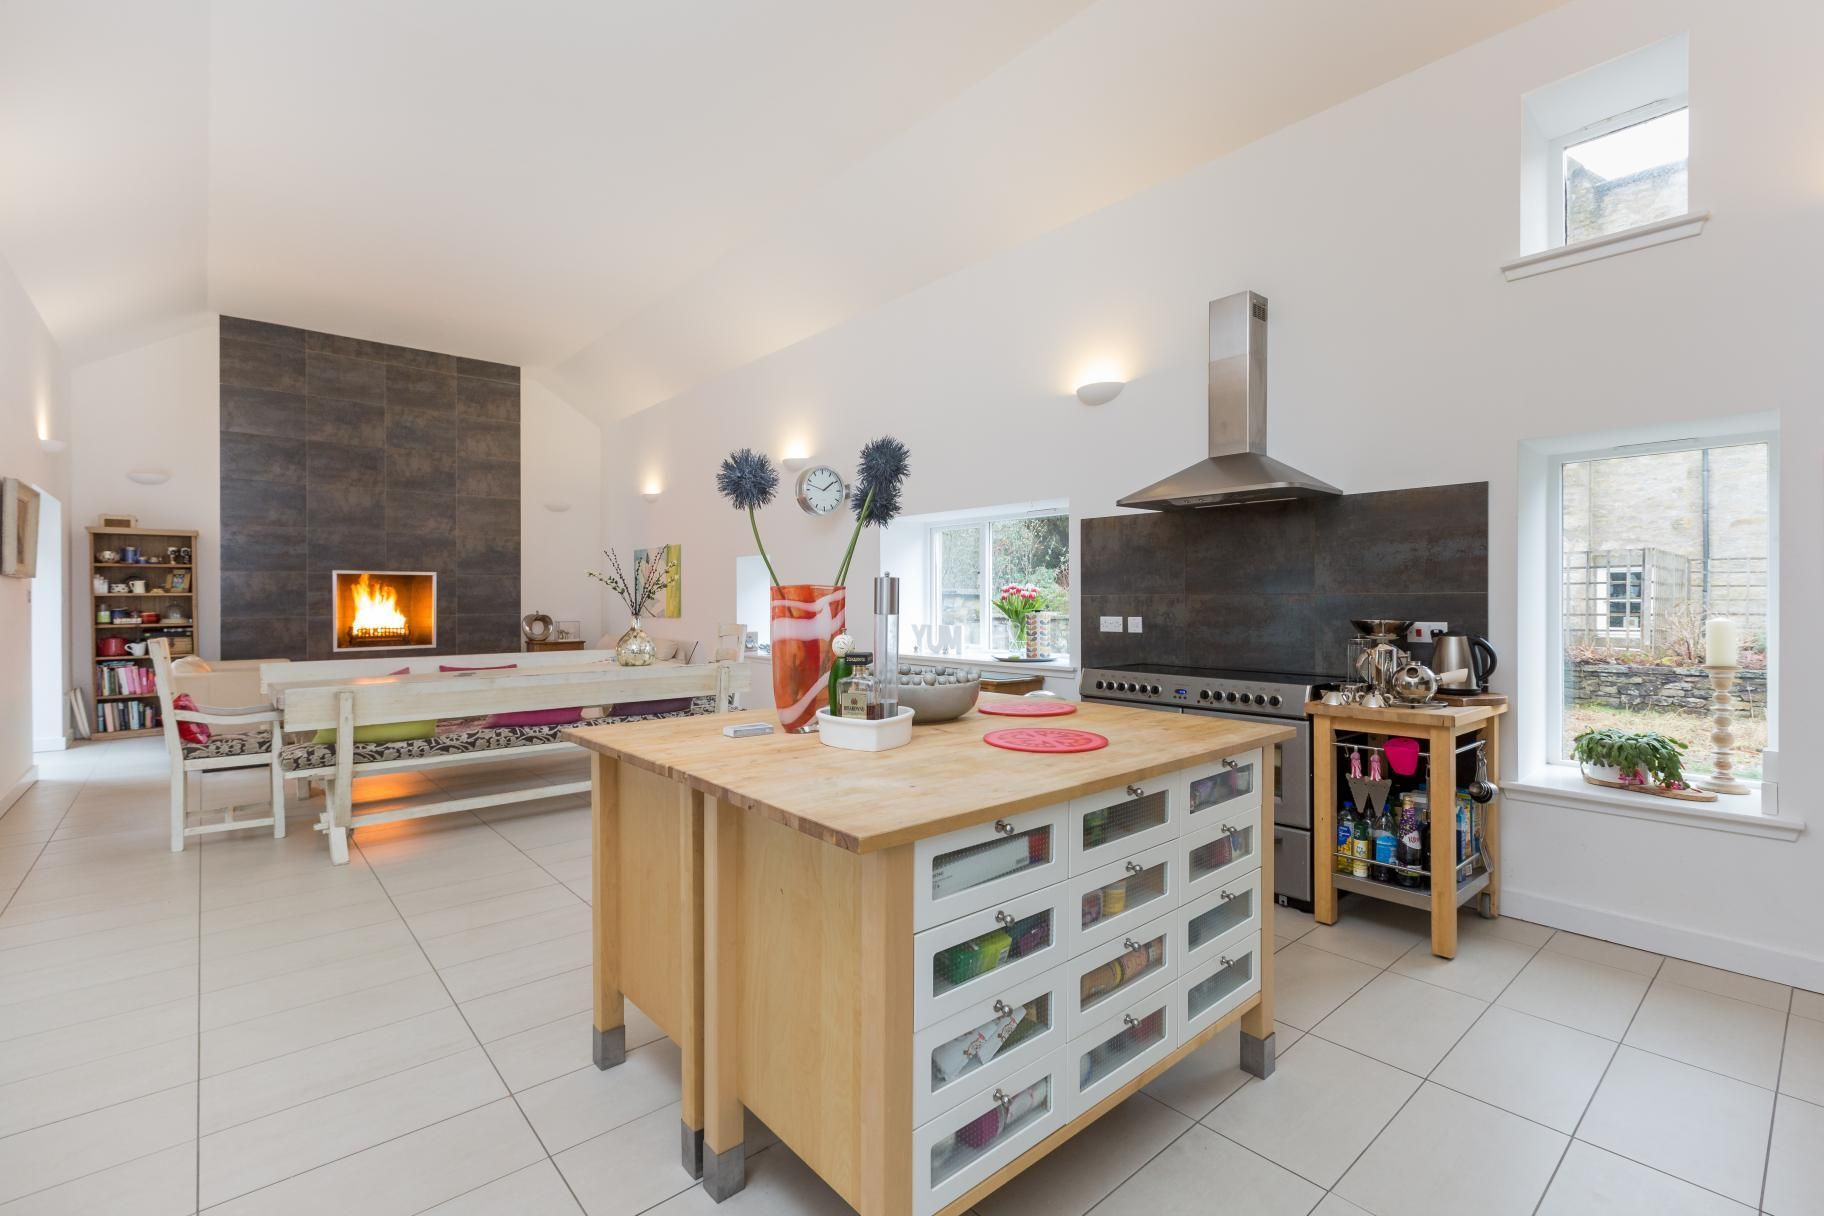 1 Rutherford Gardens, West Linton - Photo 6